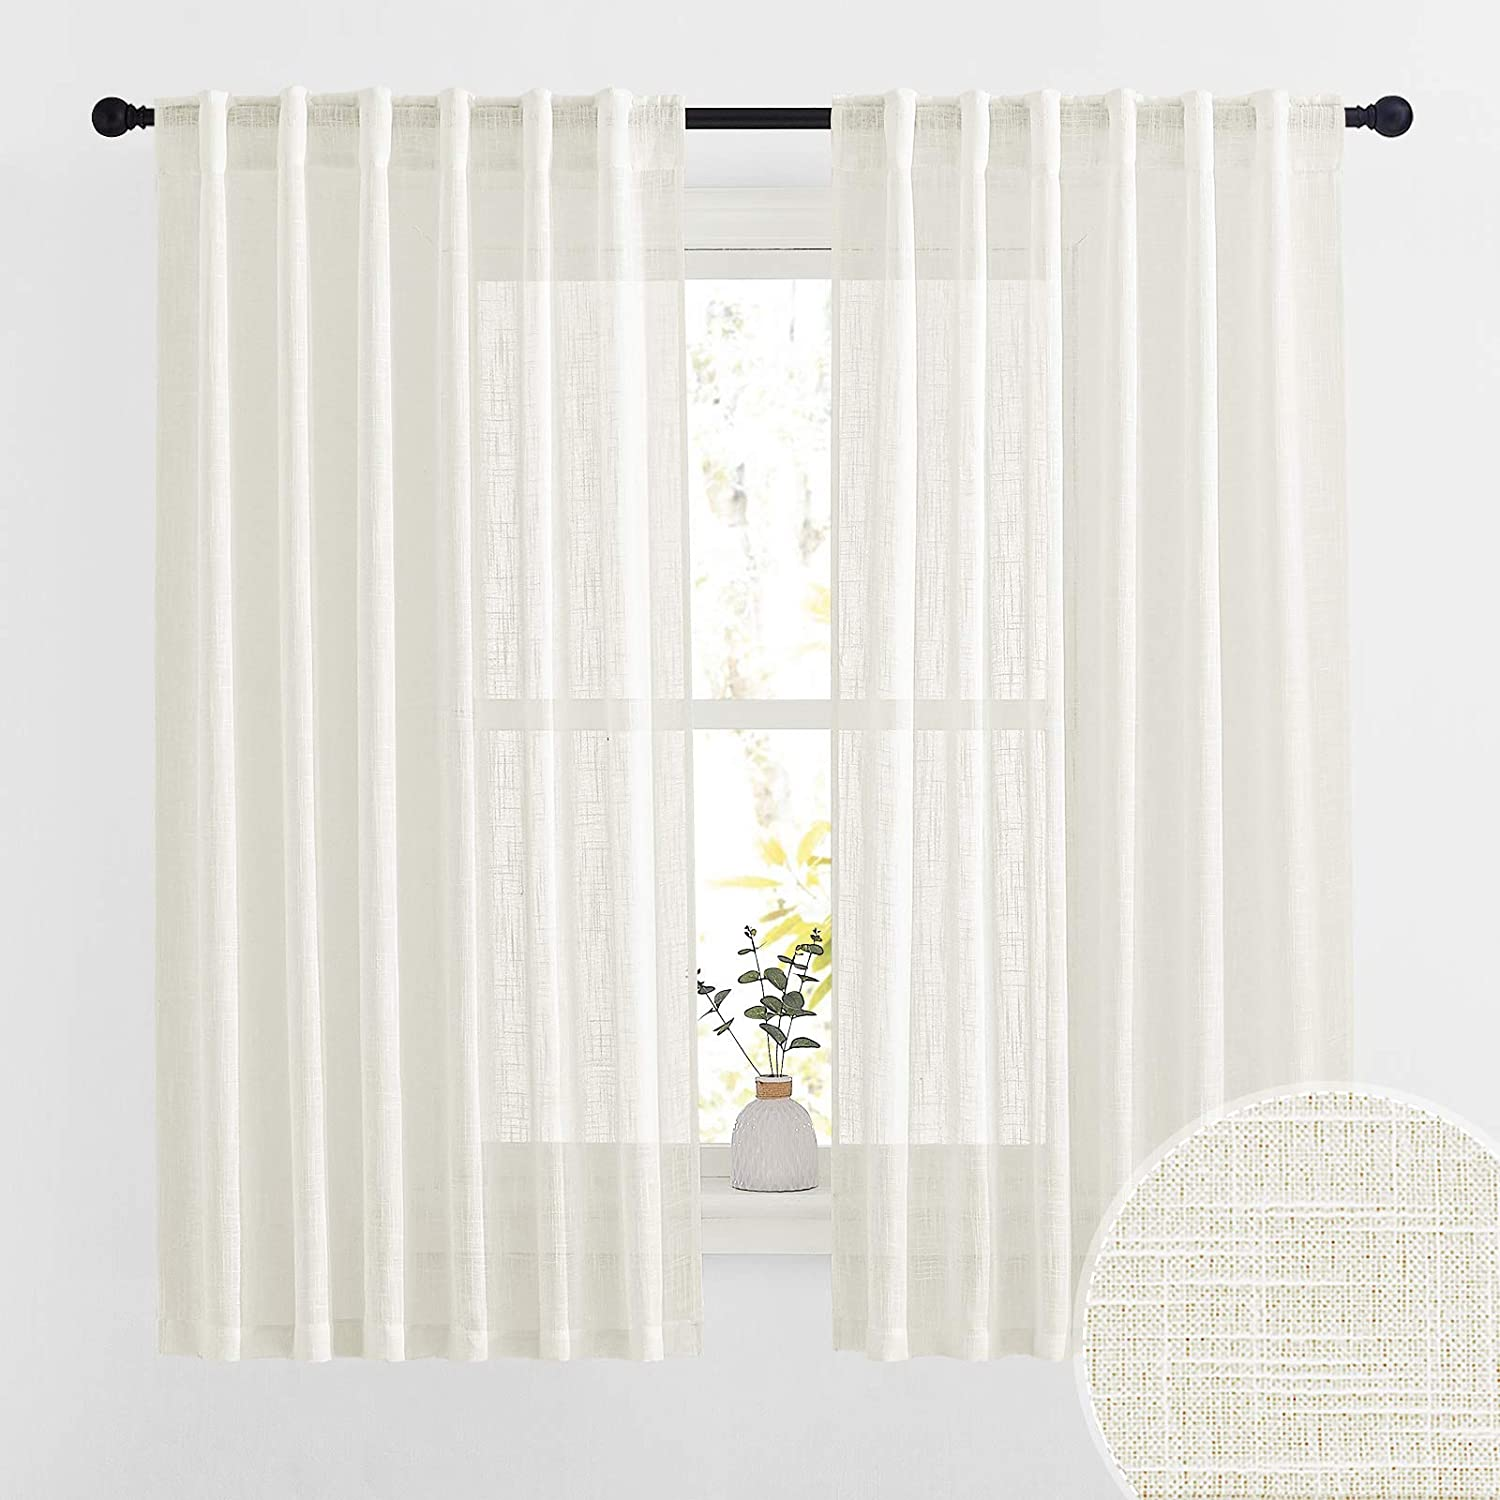 RYB HOME Semi Sheer Linen Textured Window Curtains, Light Glare Filtering Privacy Draperies for Bedroom Home Office Living Room, Natural, 52 inch Wide x 63 inch Long, Set of 2